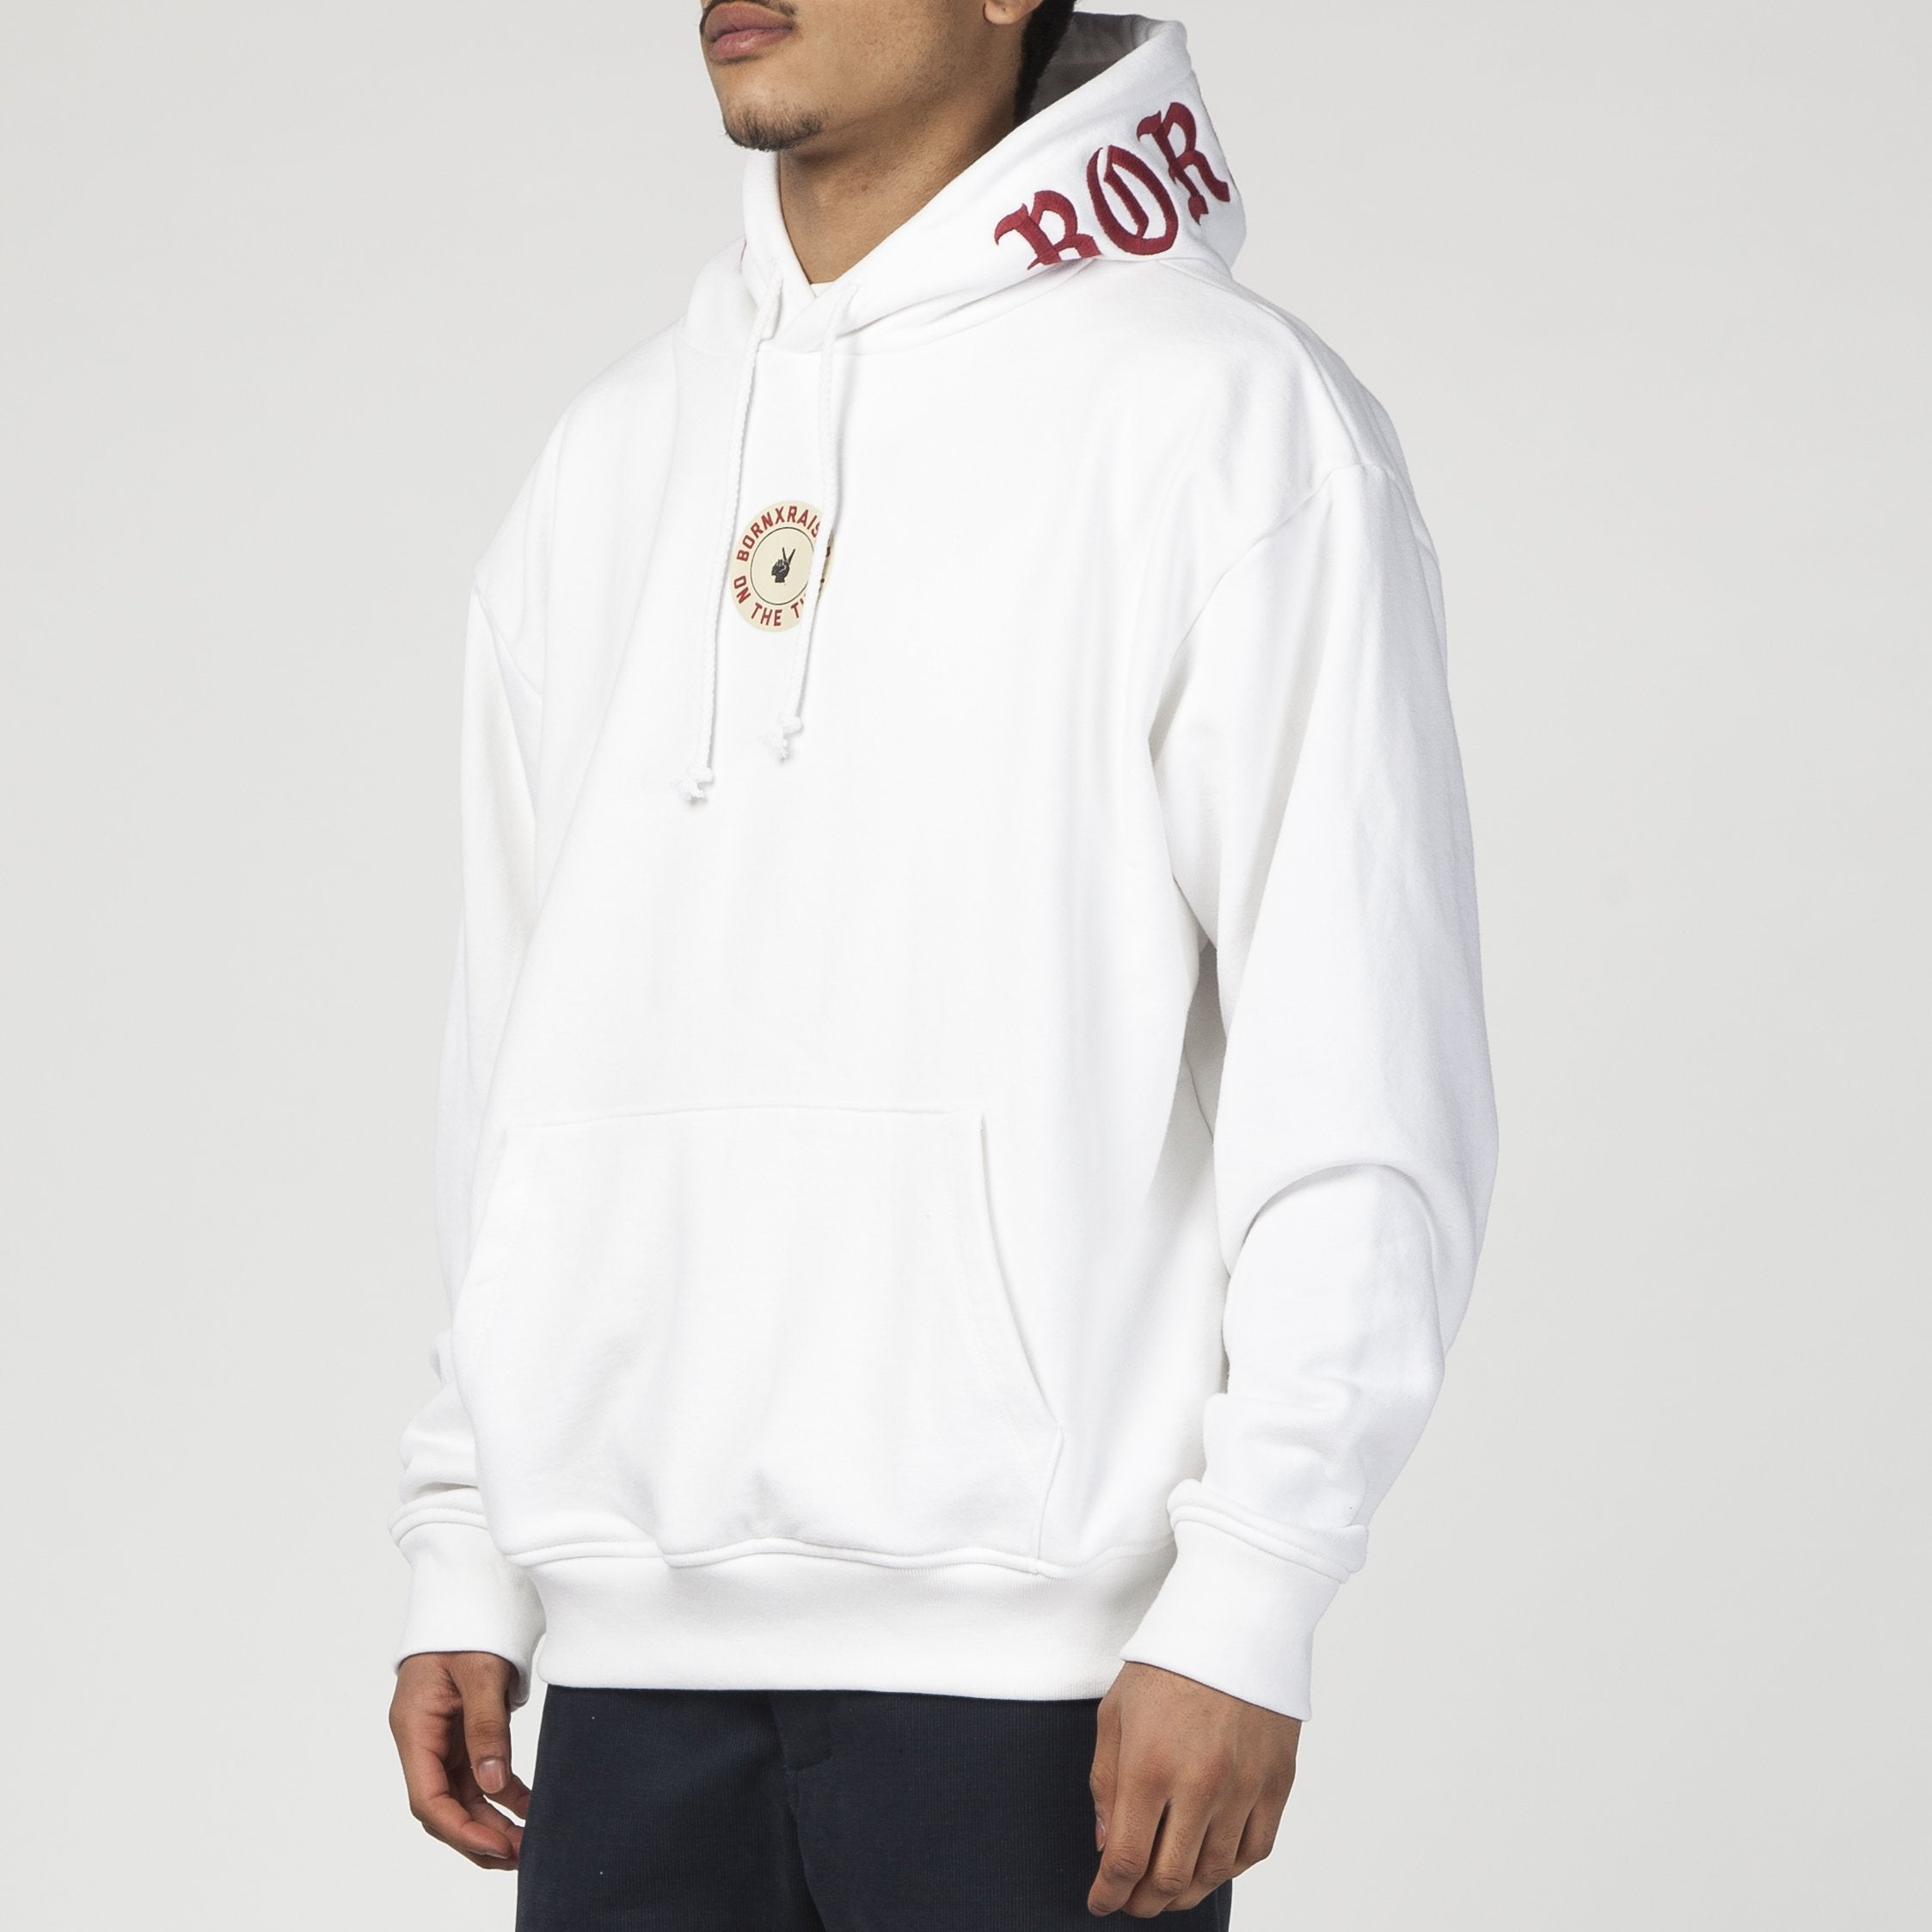 BORN X RAISED ON THE TURF PULLOVER HOODIE / WHITE